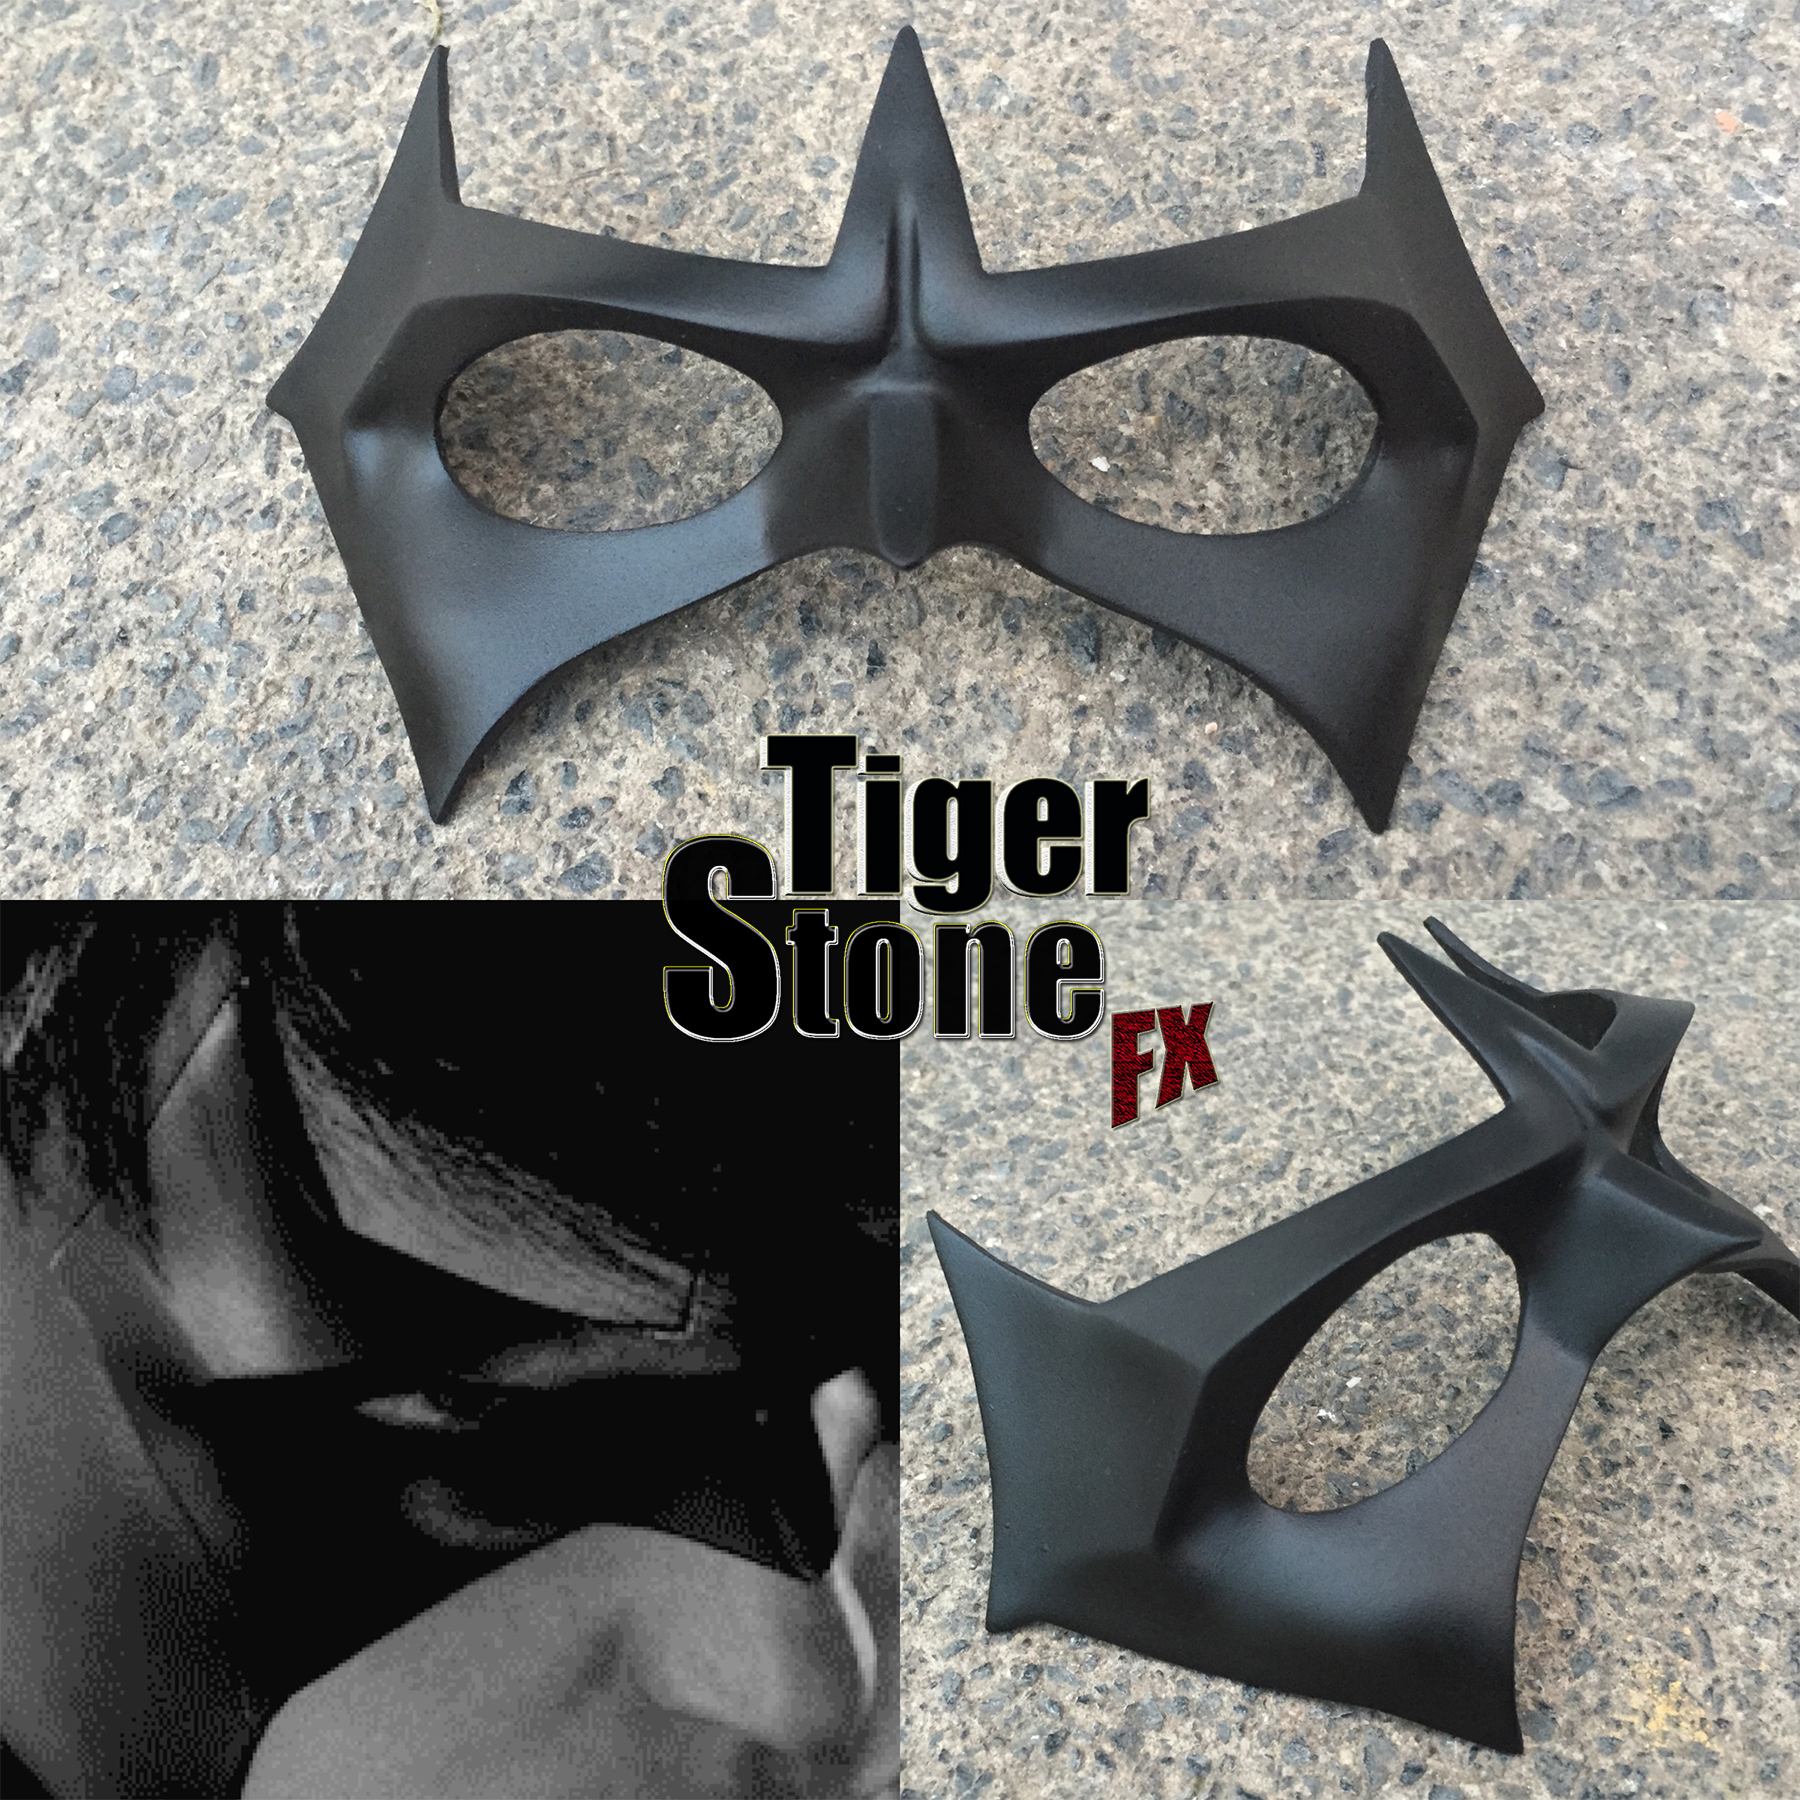 arkham knight nightwing mask by tiger stone fx tiger. Black Bedroom Furniture Sets. Home Design Ideas